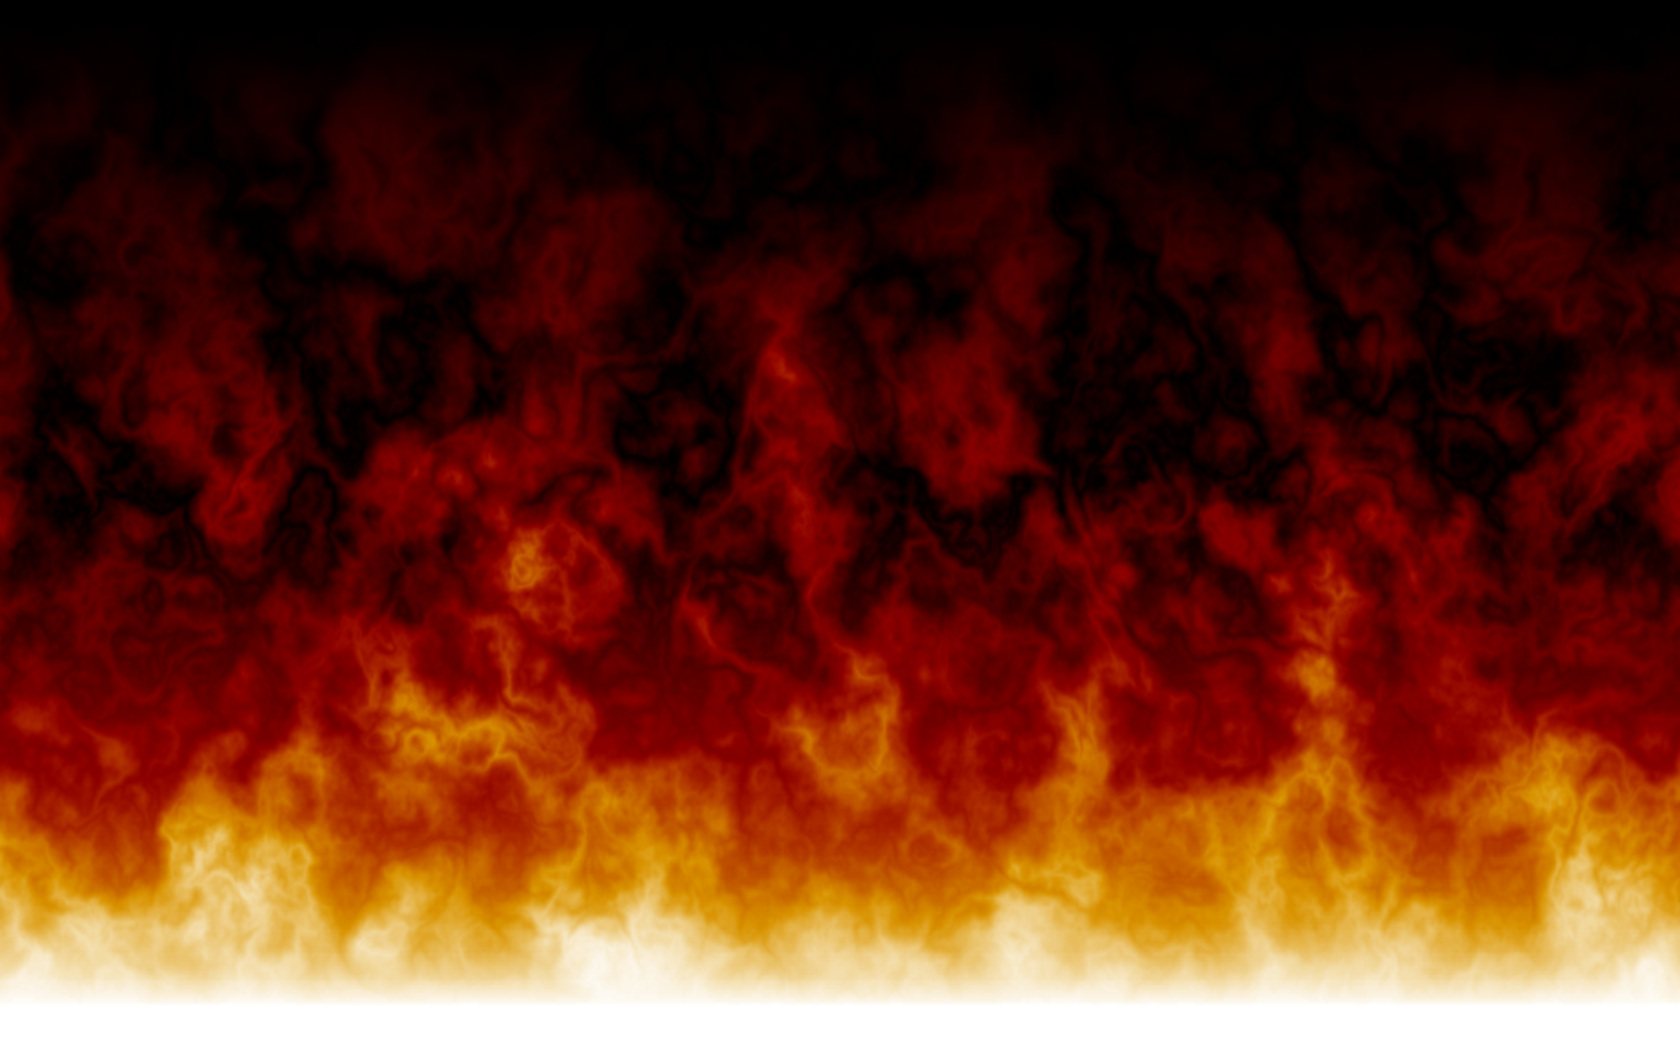 Photo: HD Widescreen Fire Backgrounds, by Lynnette Vandeventer